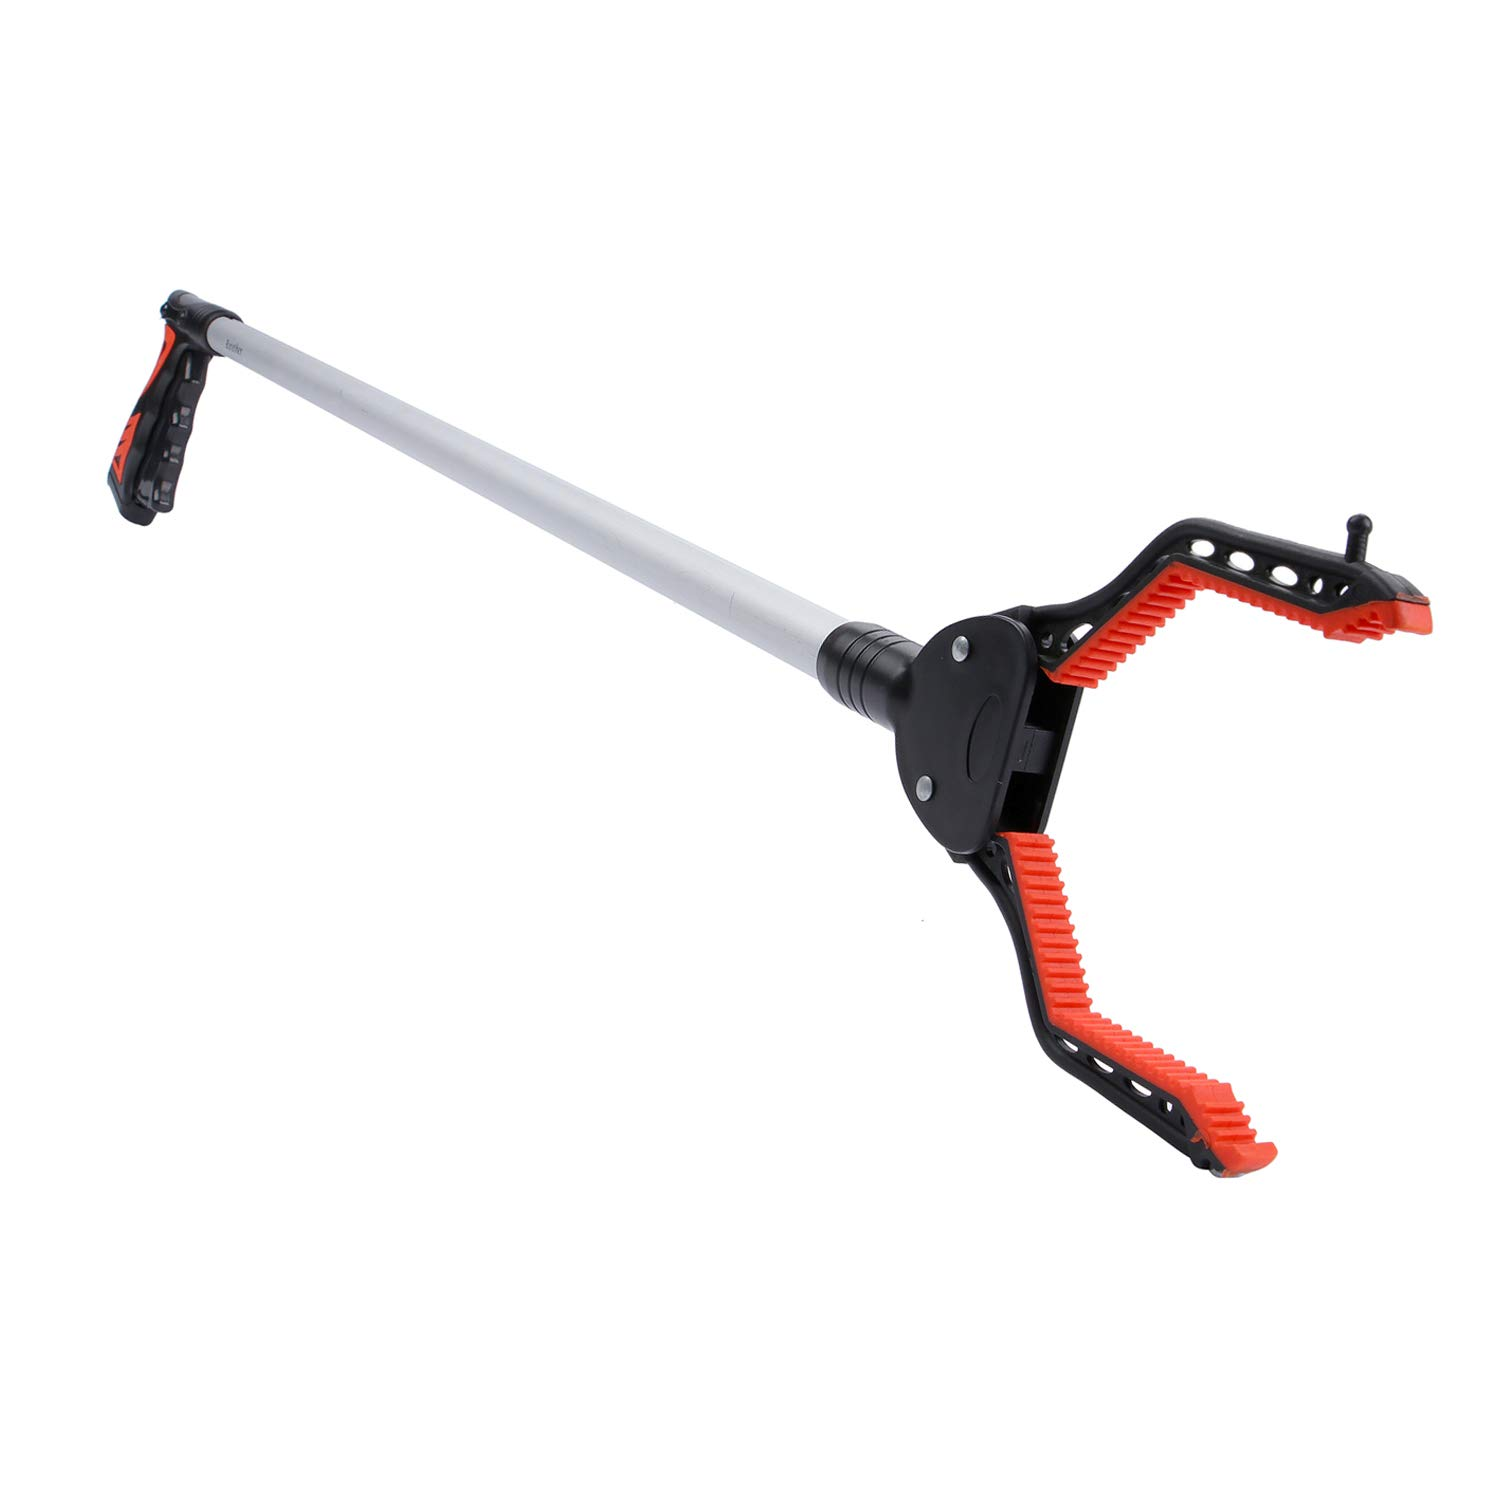 Rirether Grabber Tool for Trash Pickup, 36'' Reacher Grabber with Magnetic Tip and Hook, Rotating Gripper, Reaching Assist Tool, Durable Aluminum Alloy, Lightweight Reacher (Red)